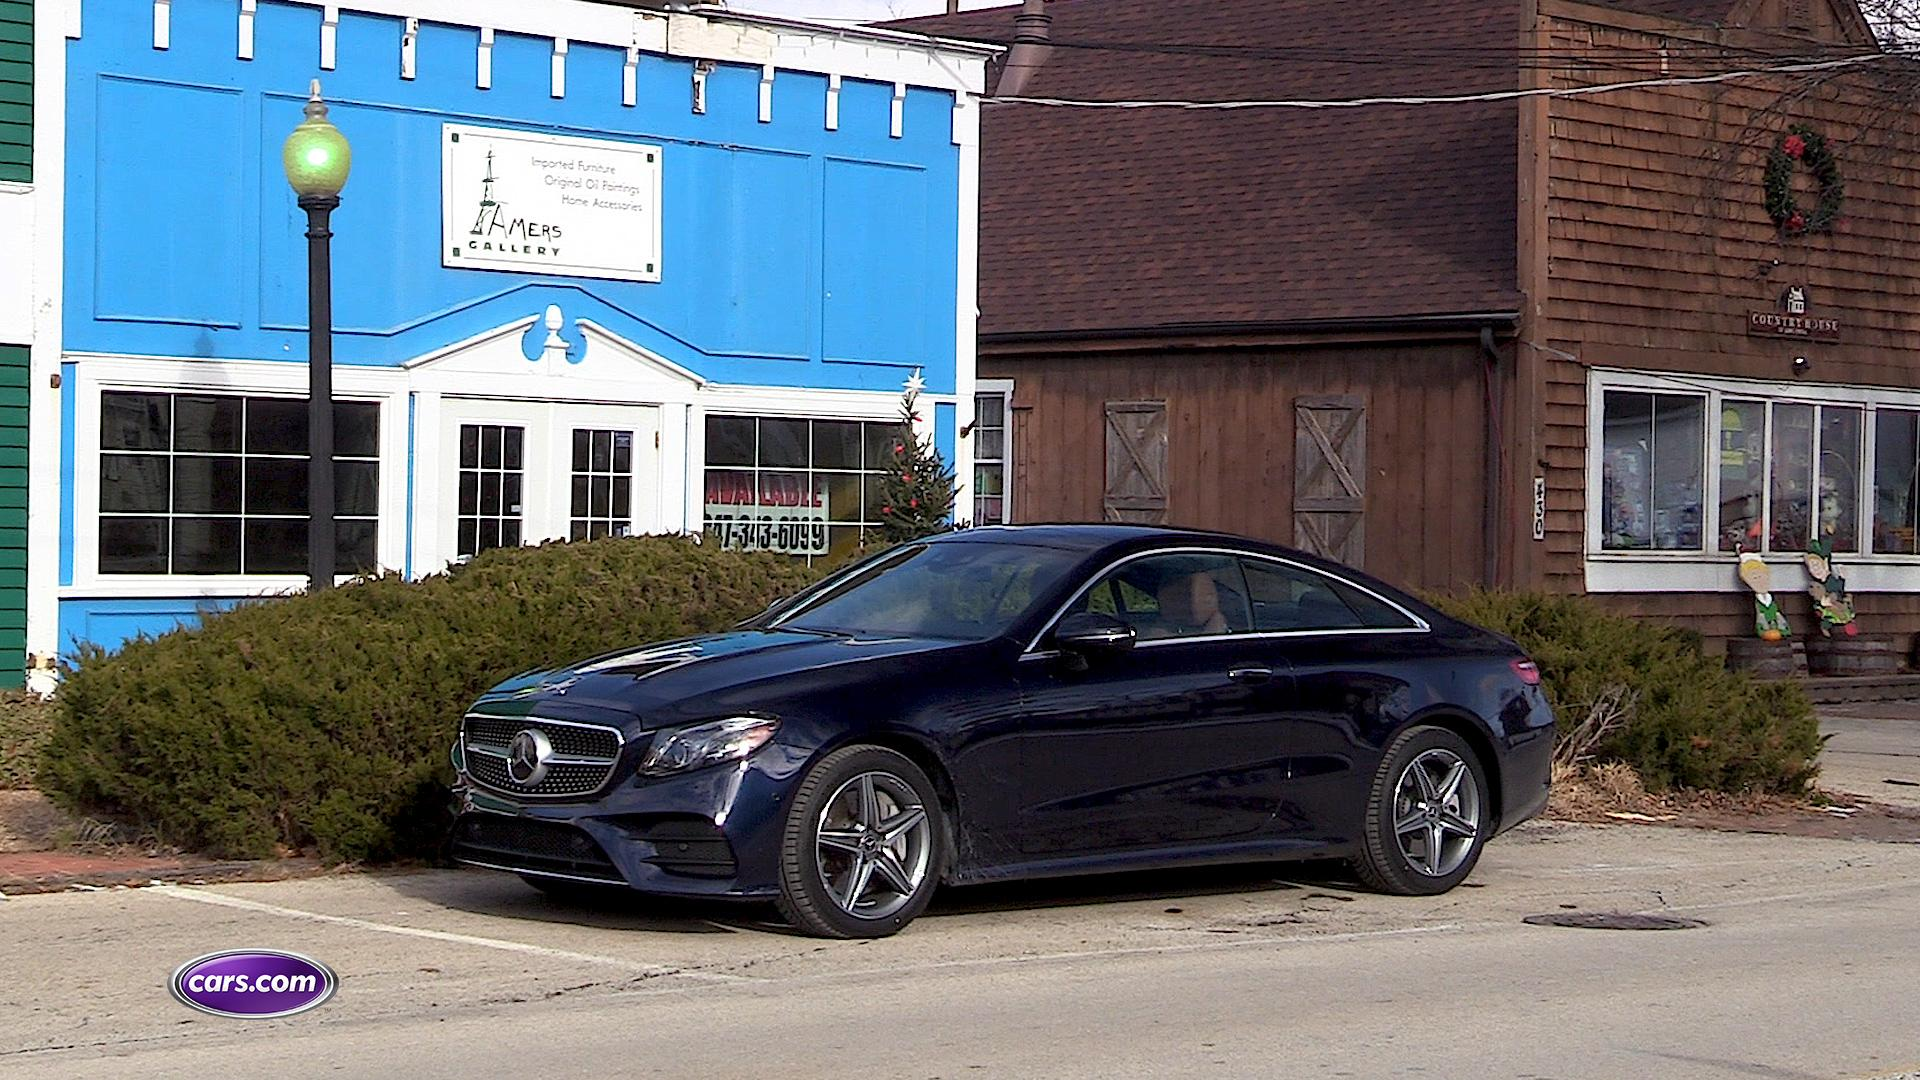 Video: 2018 Mercedes-Benz E400: 5 Cool Features — Cars.com